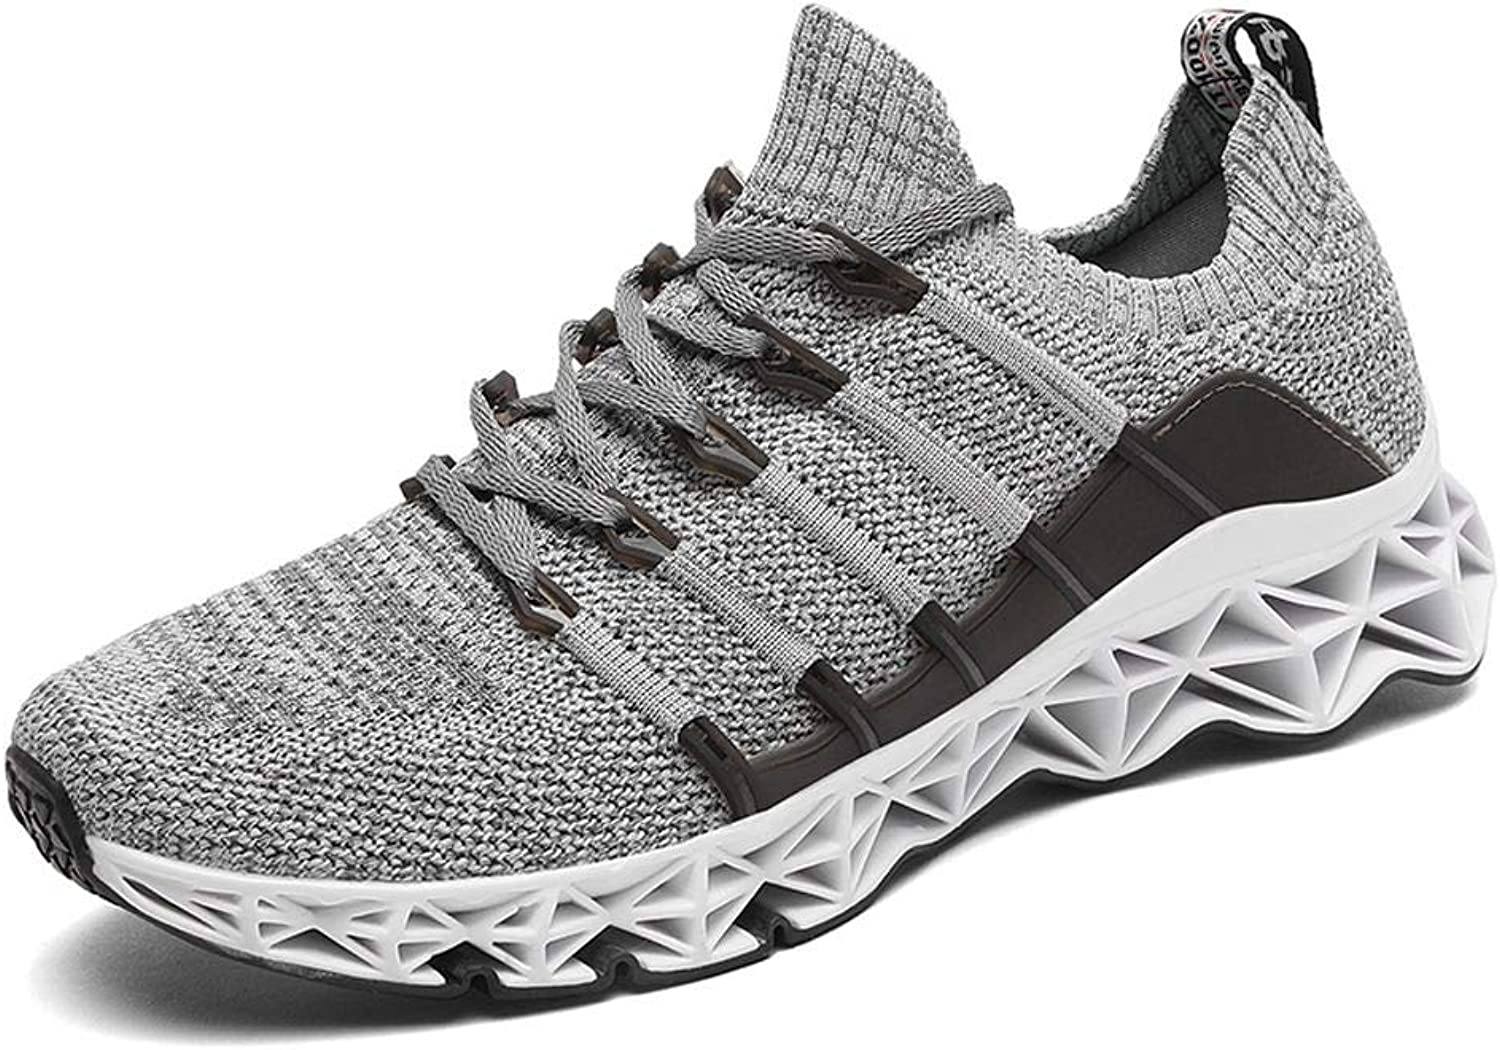 JiYe Mens Running shoes Blade Fashion Breathable Casual Flyknit Sports Sneakers